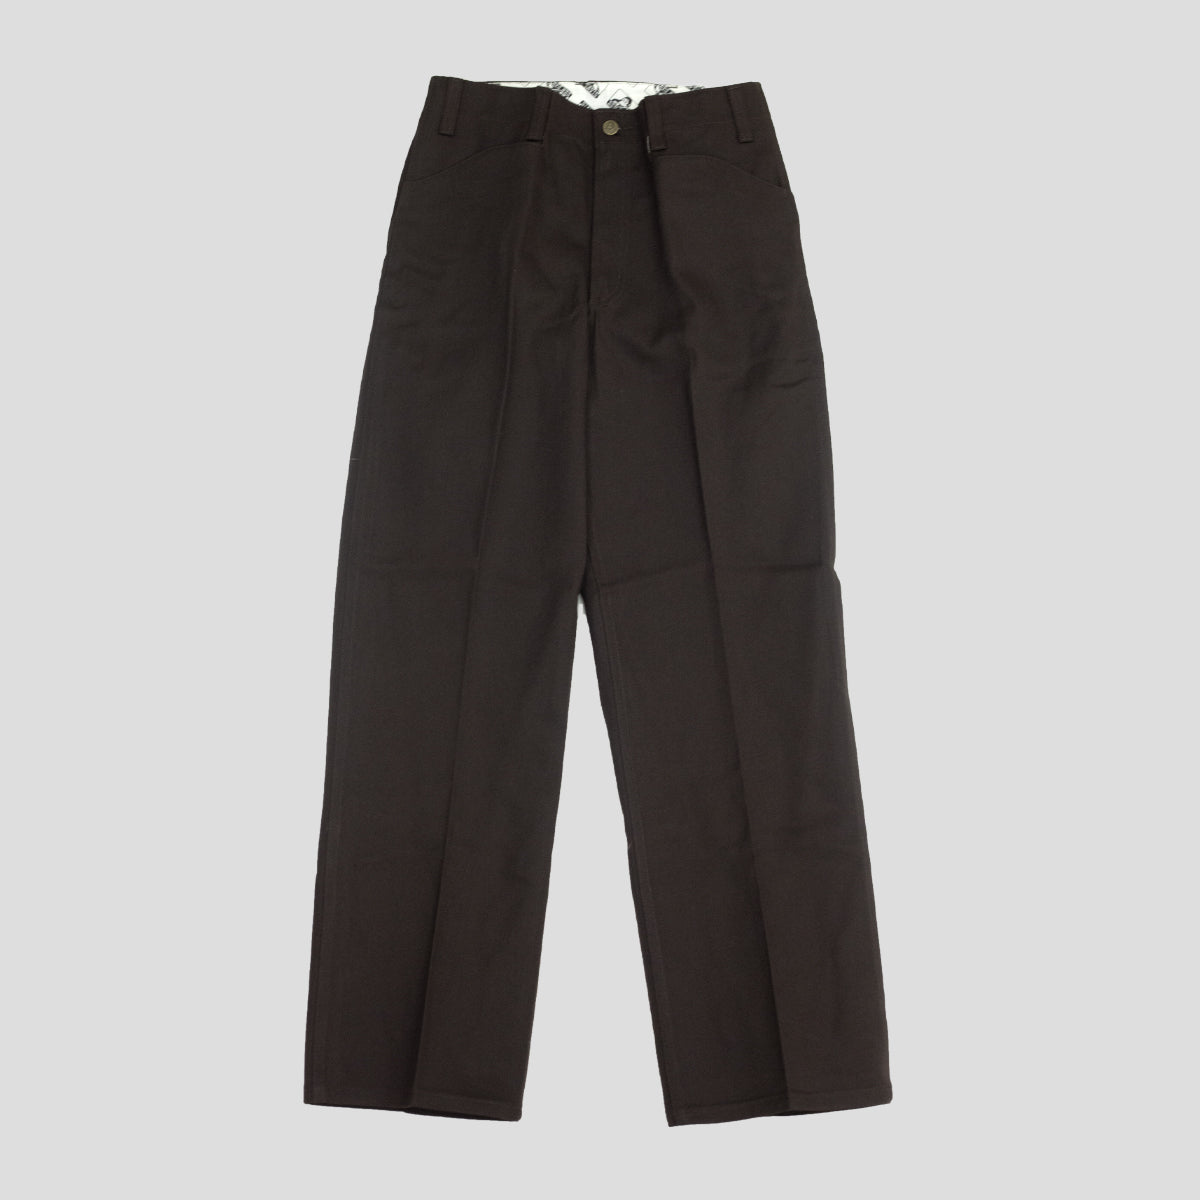 "BEN DAVIS ""ORIGINAL BENS"" PANT BROWN"